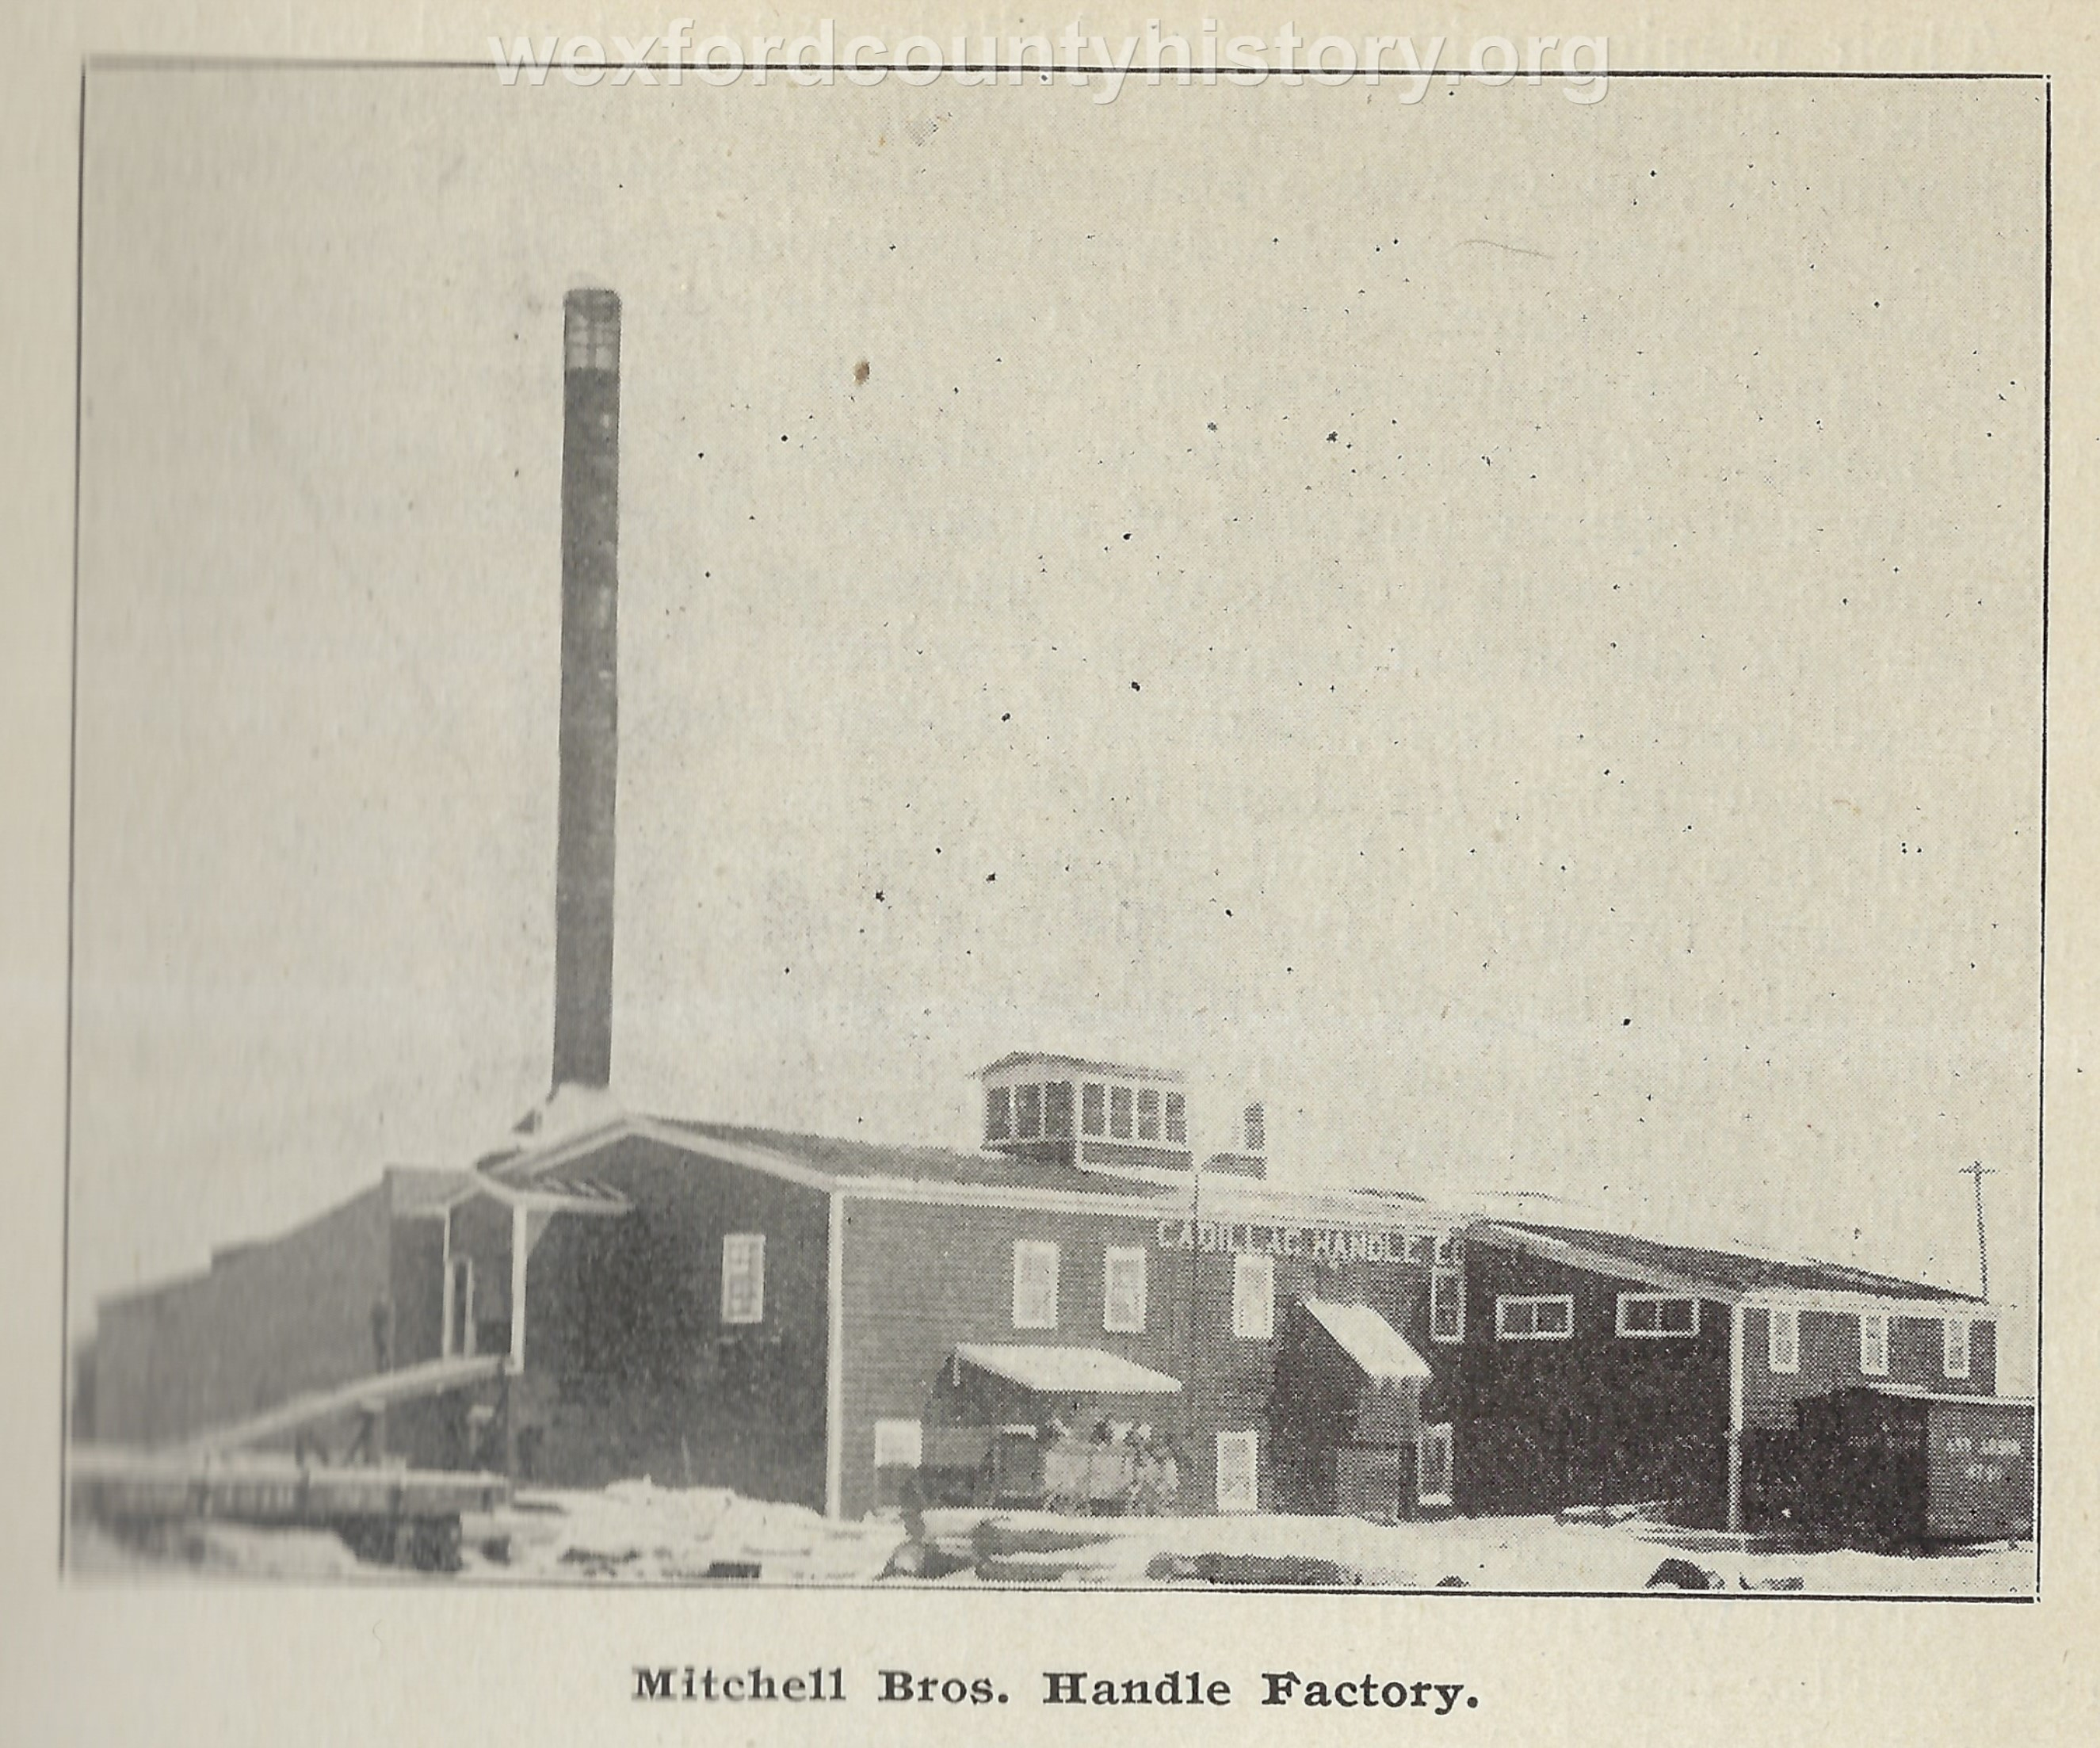 Cadillac-Business-Mitchell-Brothers-Handle-Factory